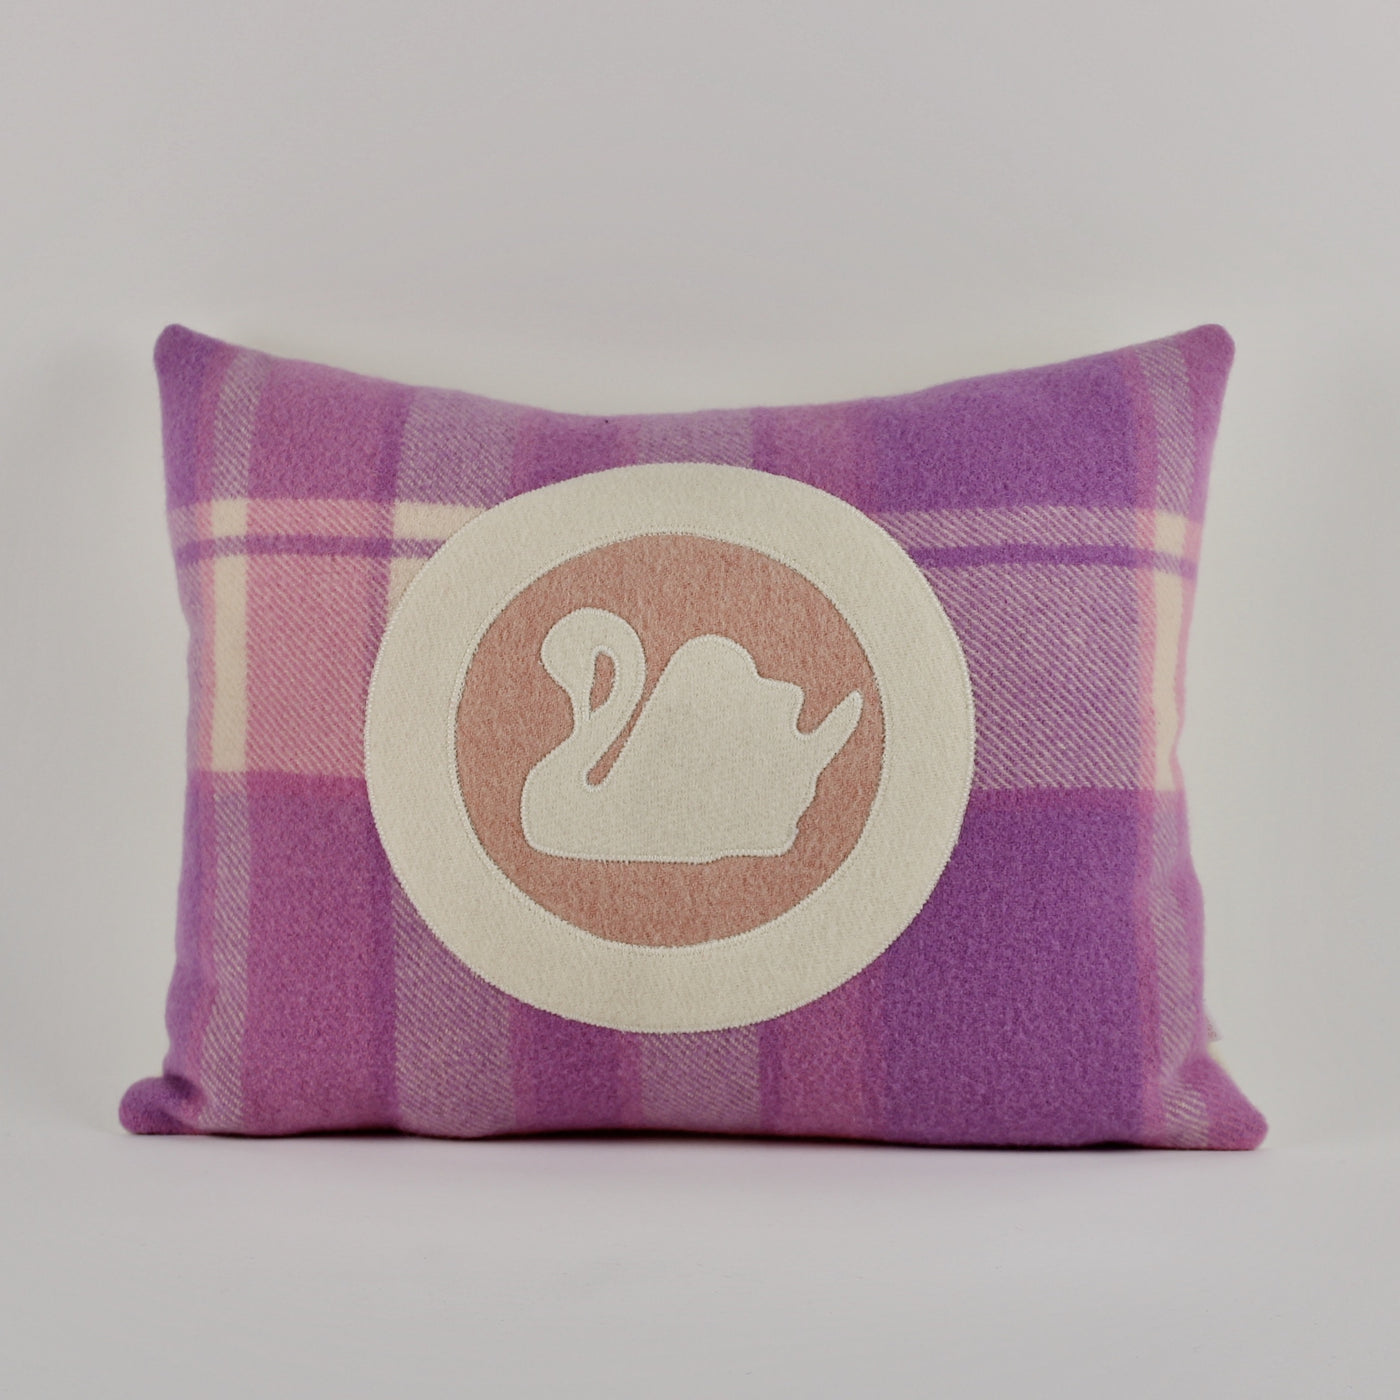 Swan cushion - pink background